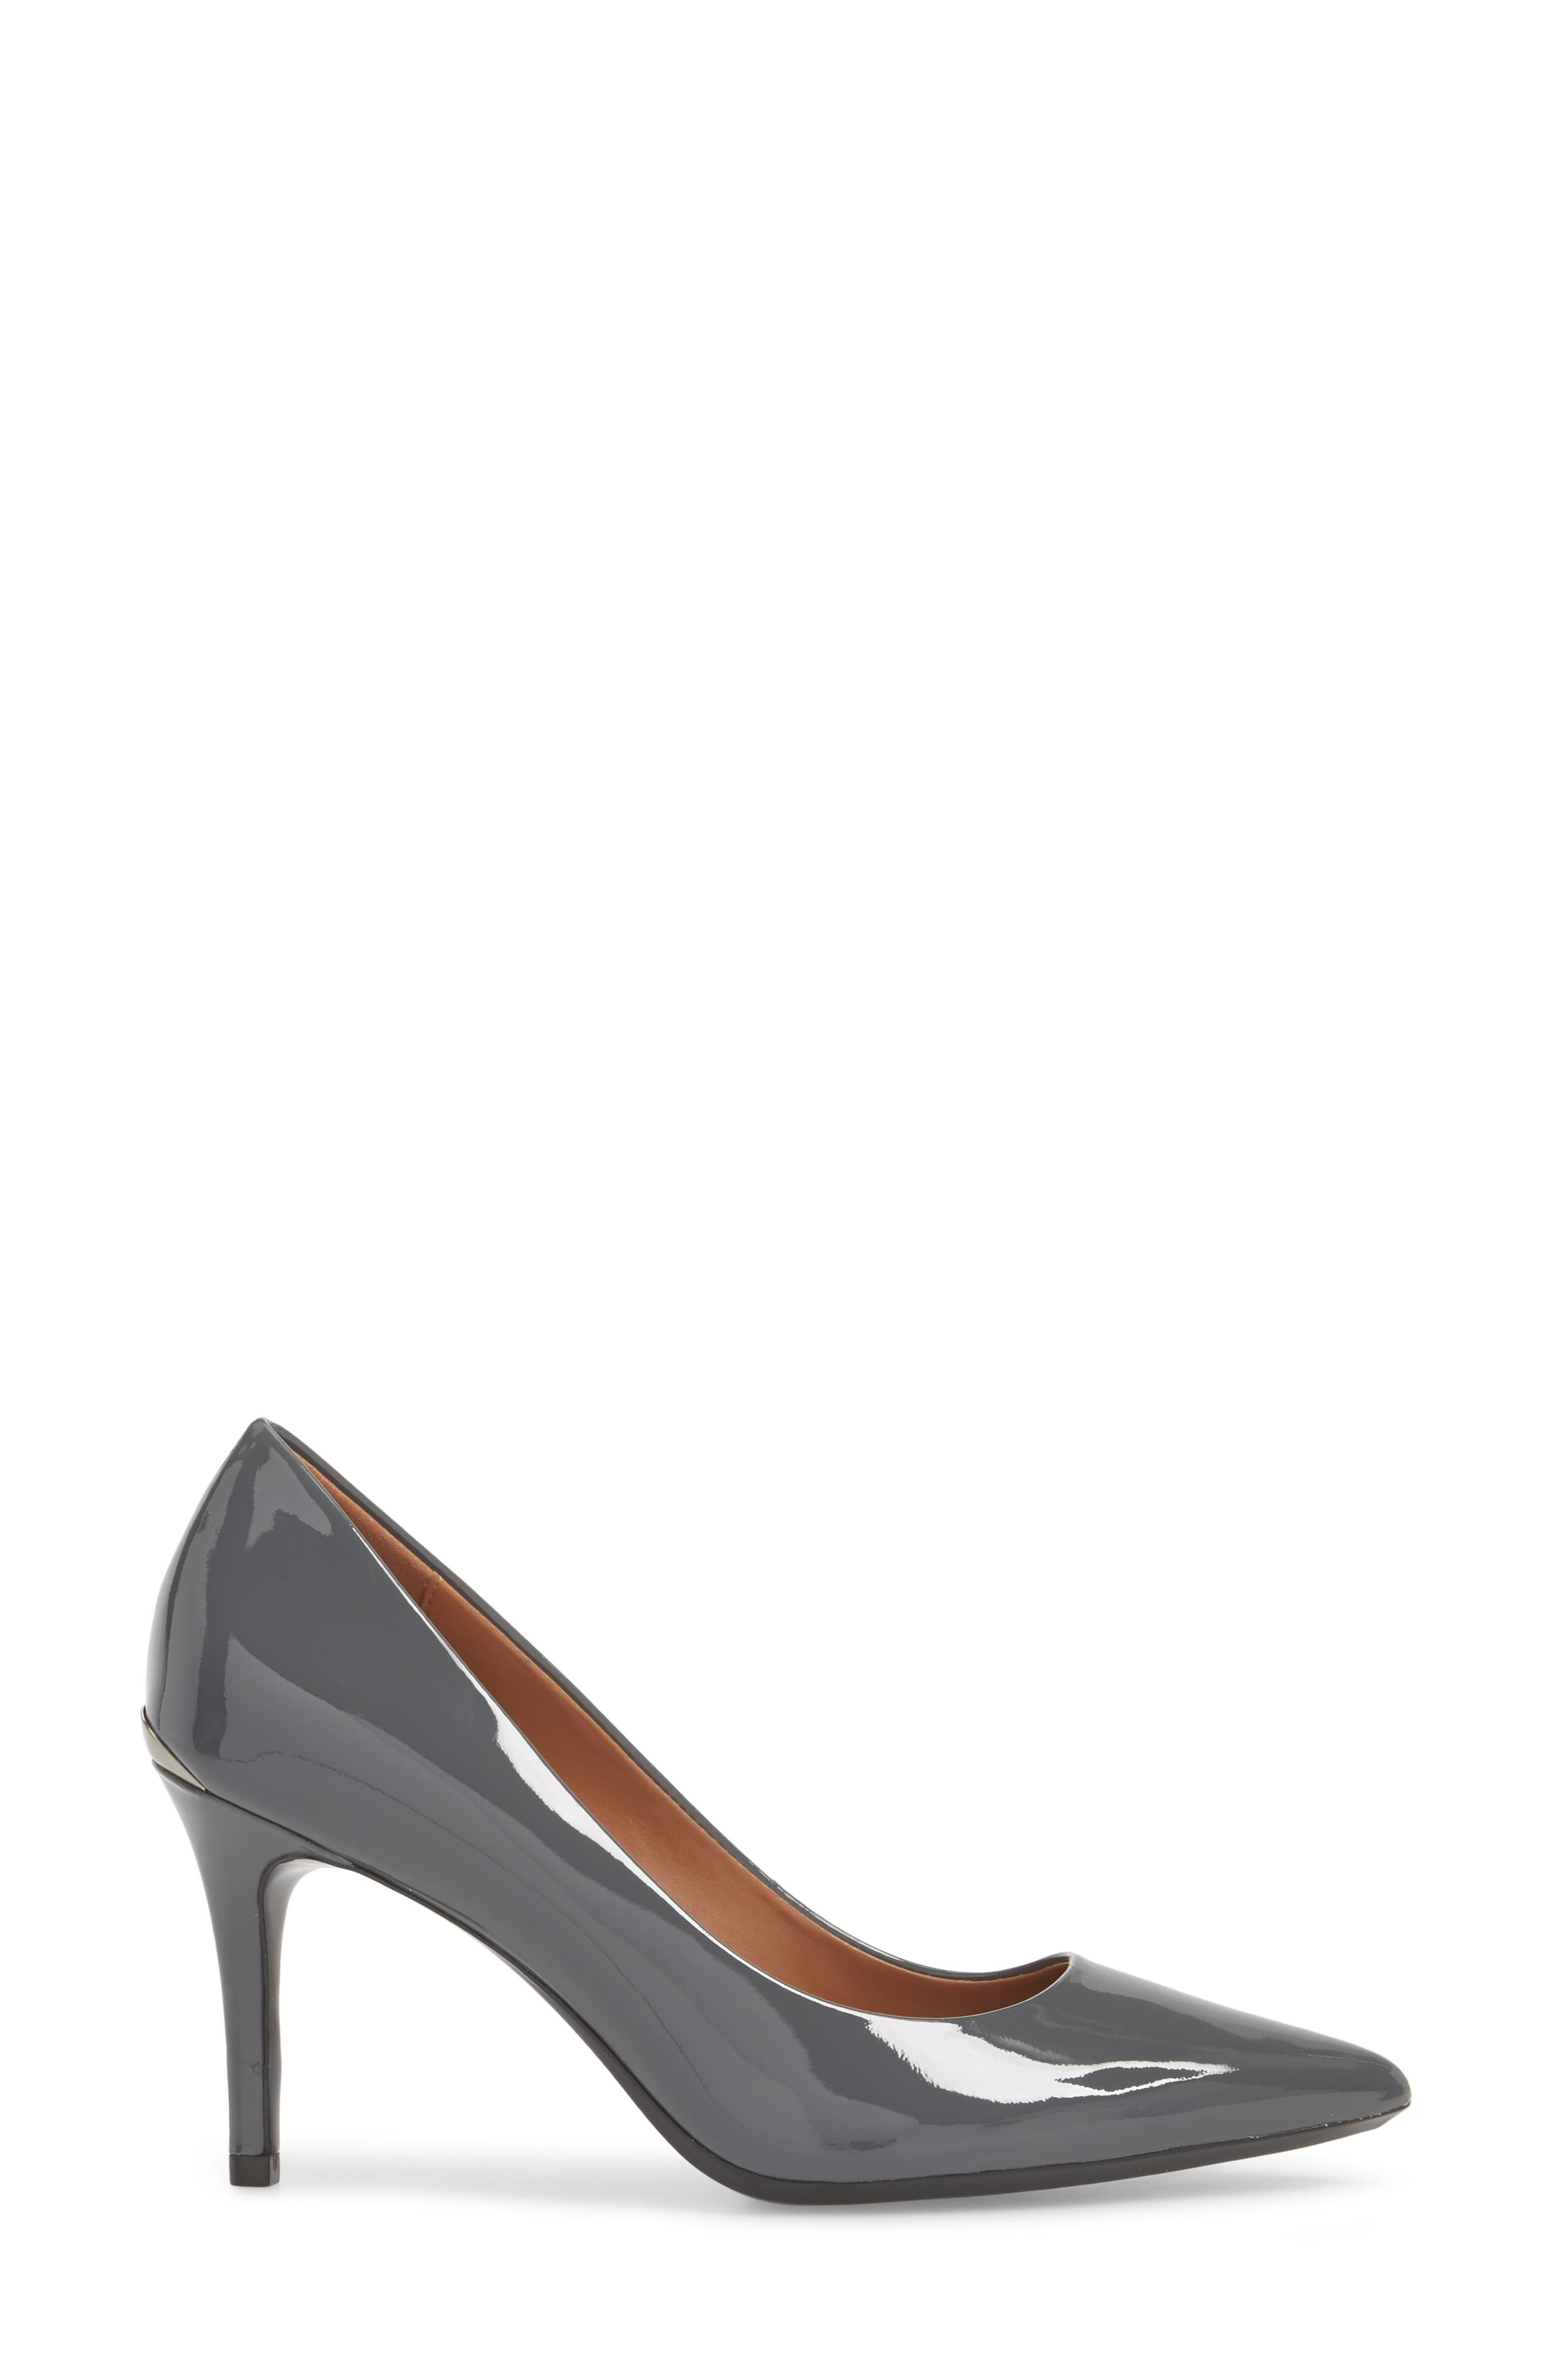 'Gayle' Pointy Toe Pump,                             Alternate thumbnail 3, color,                             STEEL GREYSTONE LEATHER